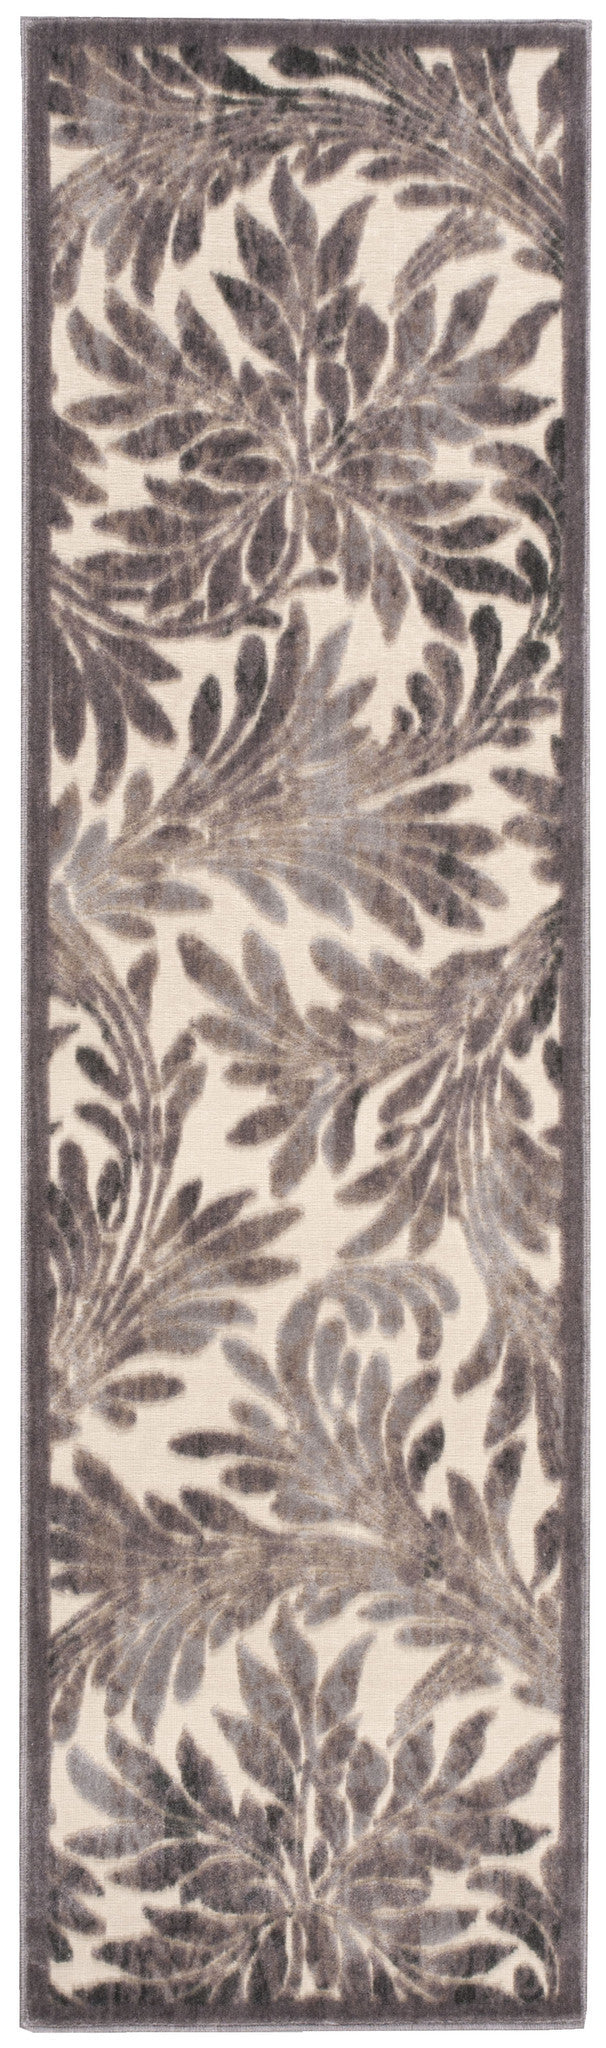 Nourison Graphic Illusions Ivory Area Rug GIL19 IV